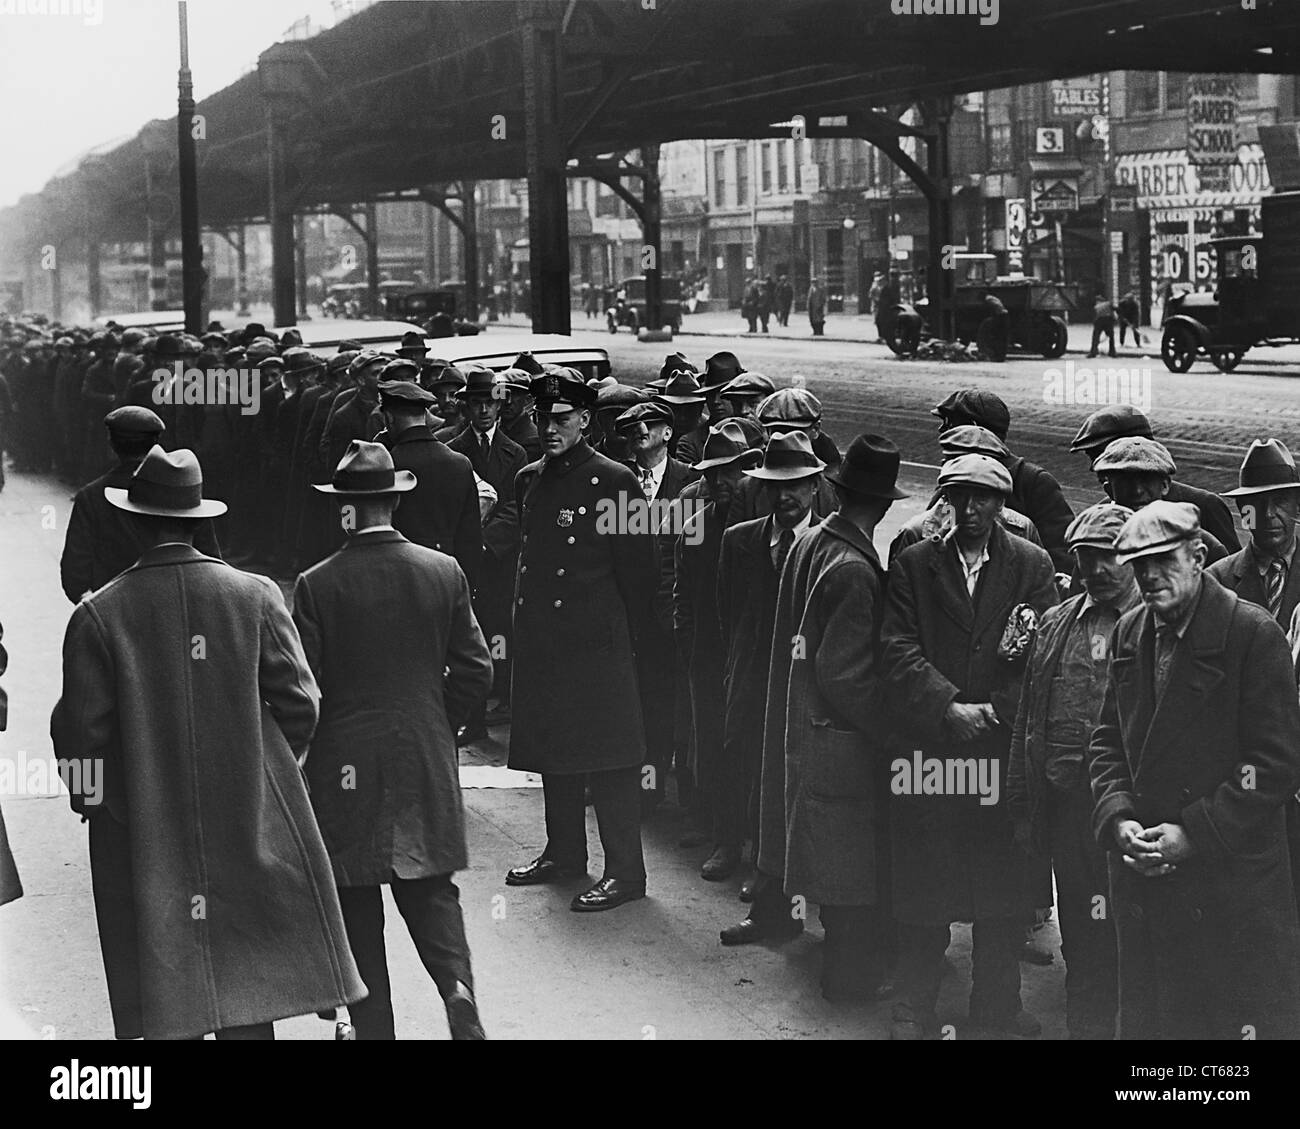 Men in bread line during depression, New York City - Stock Image